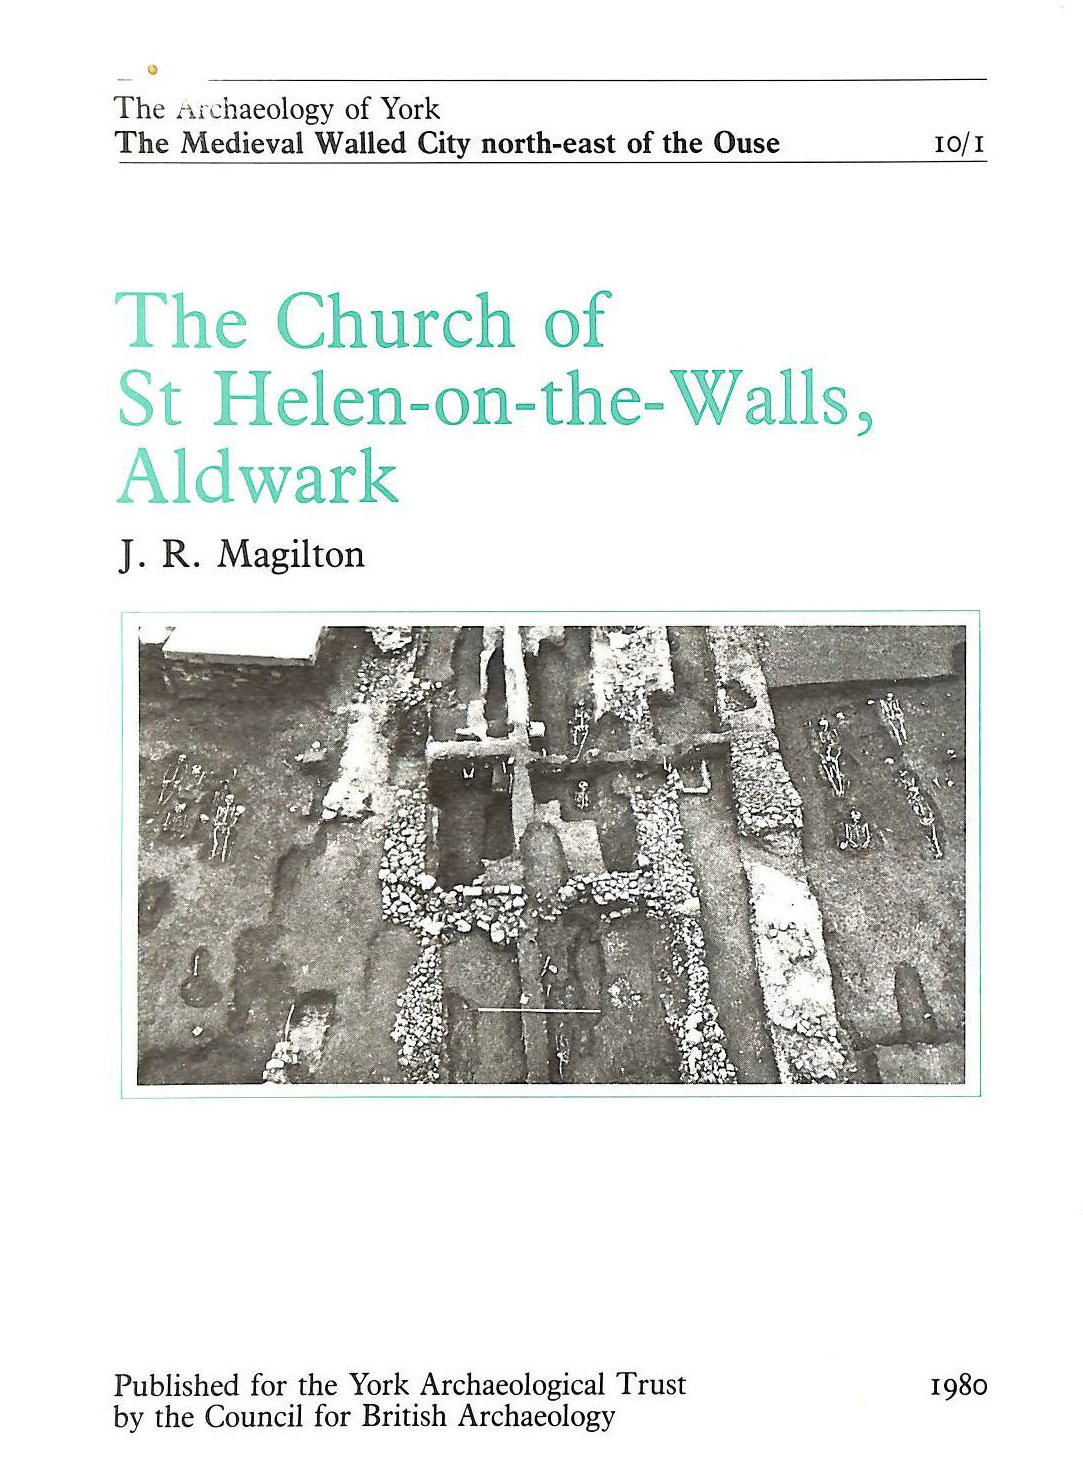 Image for The Archaeology of York: Church of St. Helen-on-the-Walls, Aldwark